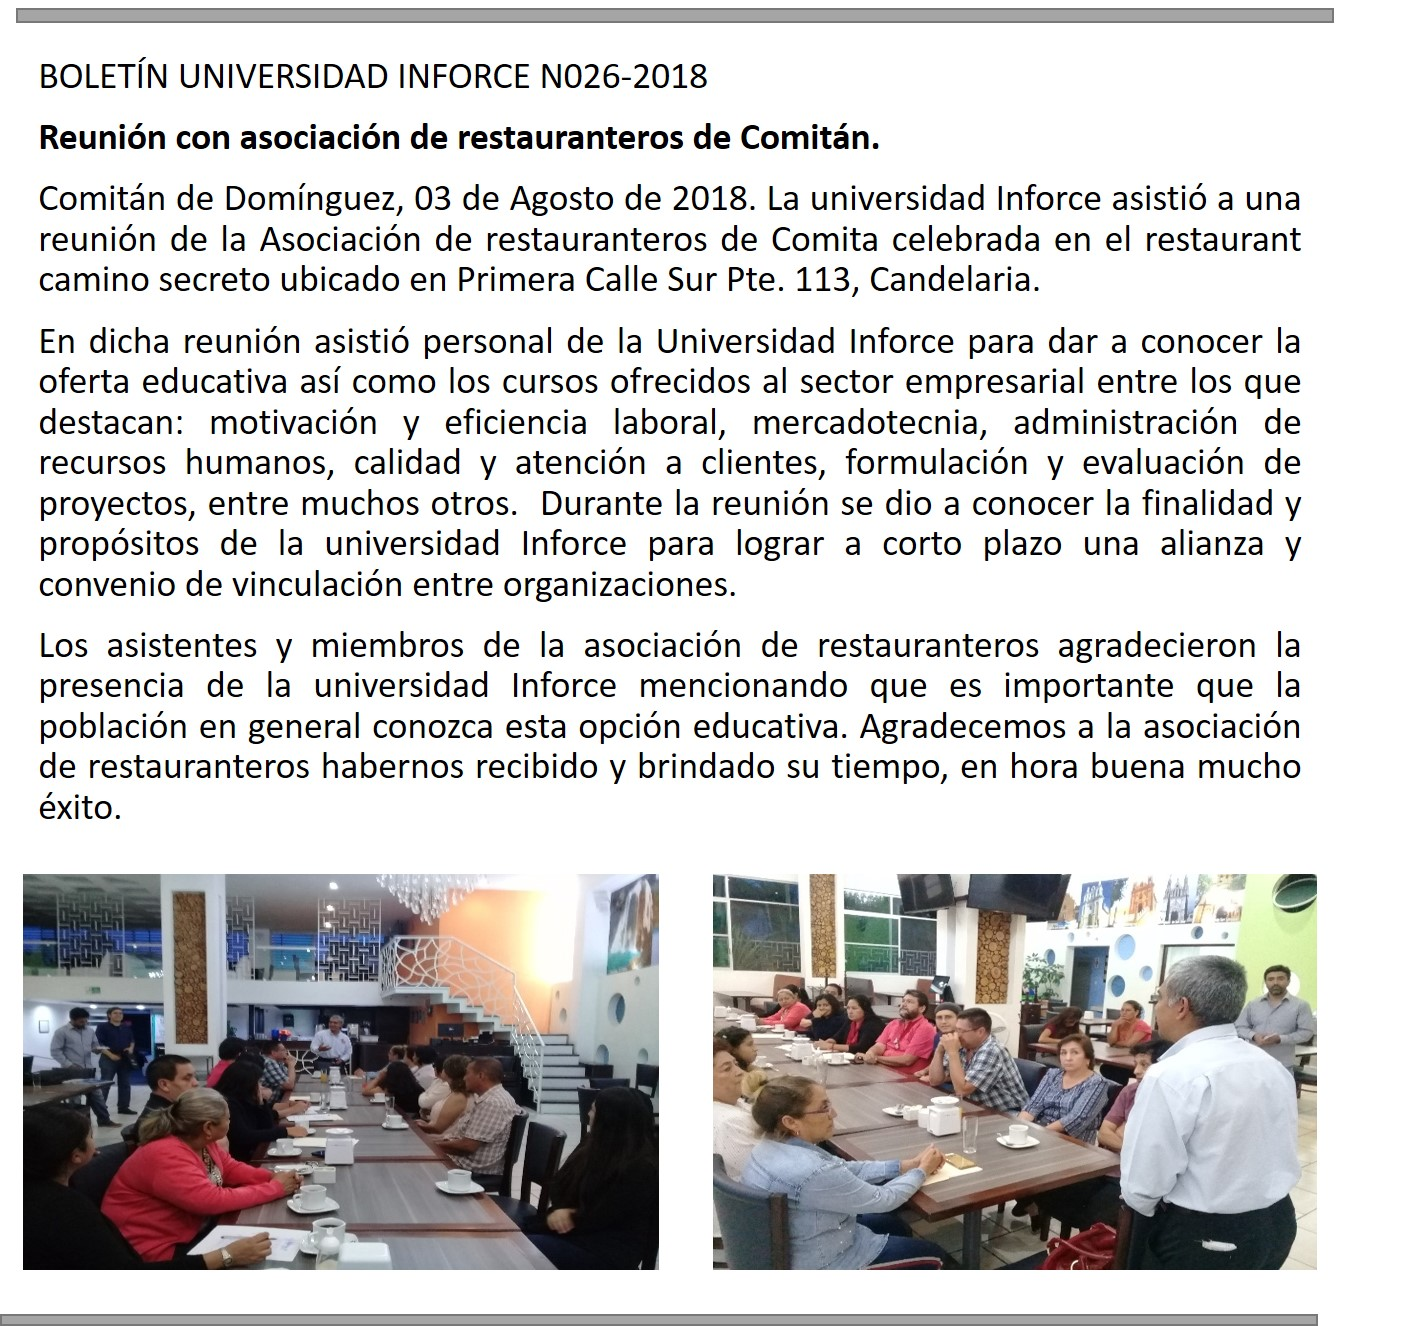 boletin-universidad-inforce-n026-2018.jpg